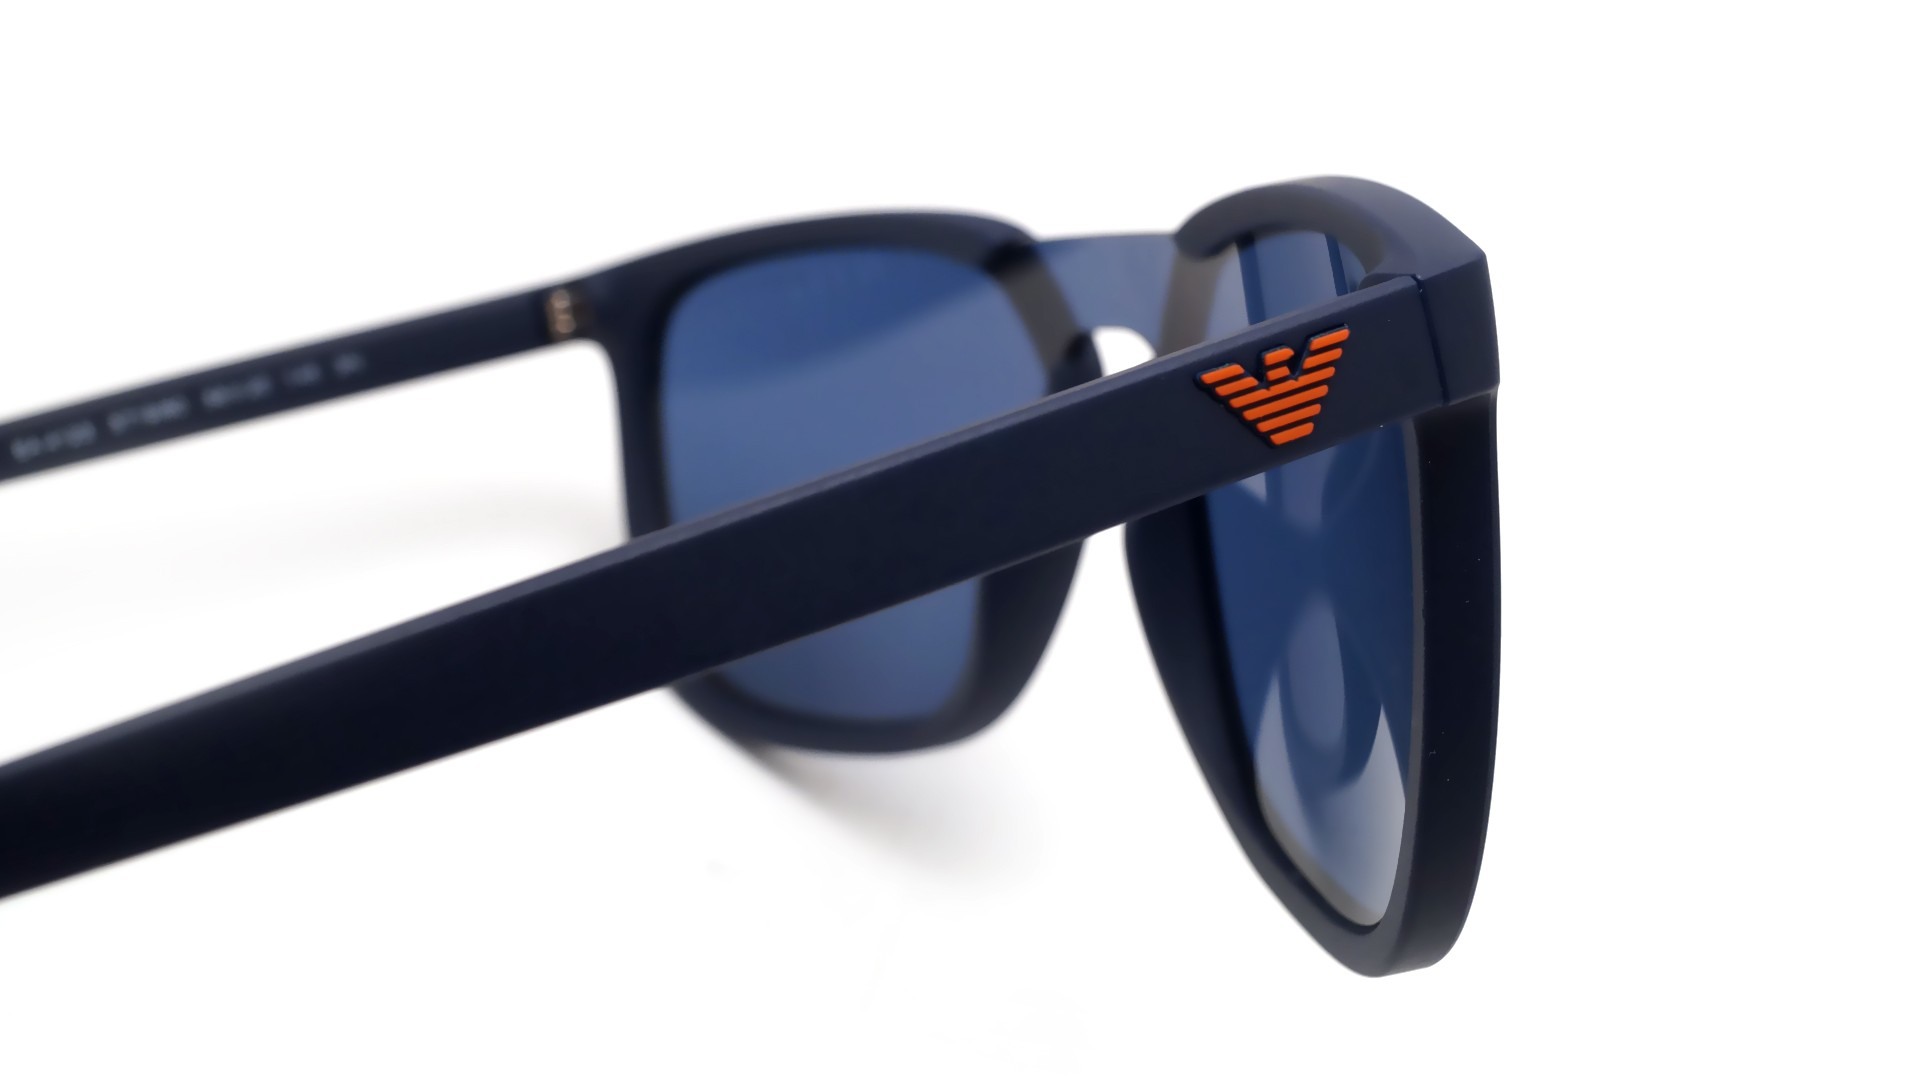 3ac3d983bf942 Sunglasses Emporio Armani EA4123 571980 58-17 Blue Mat Large Flash